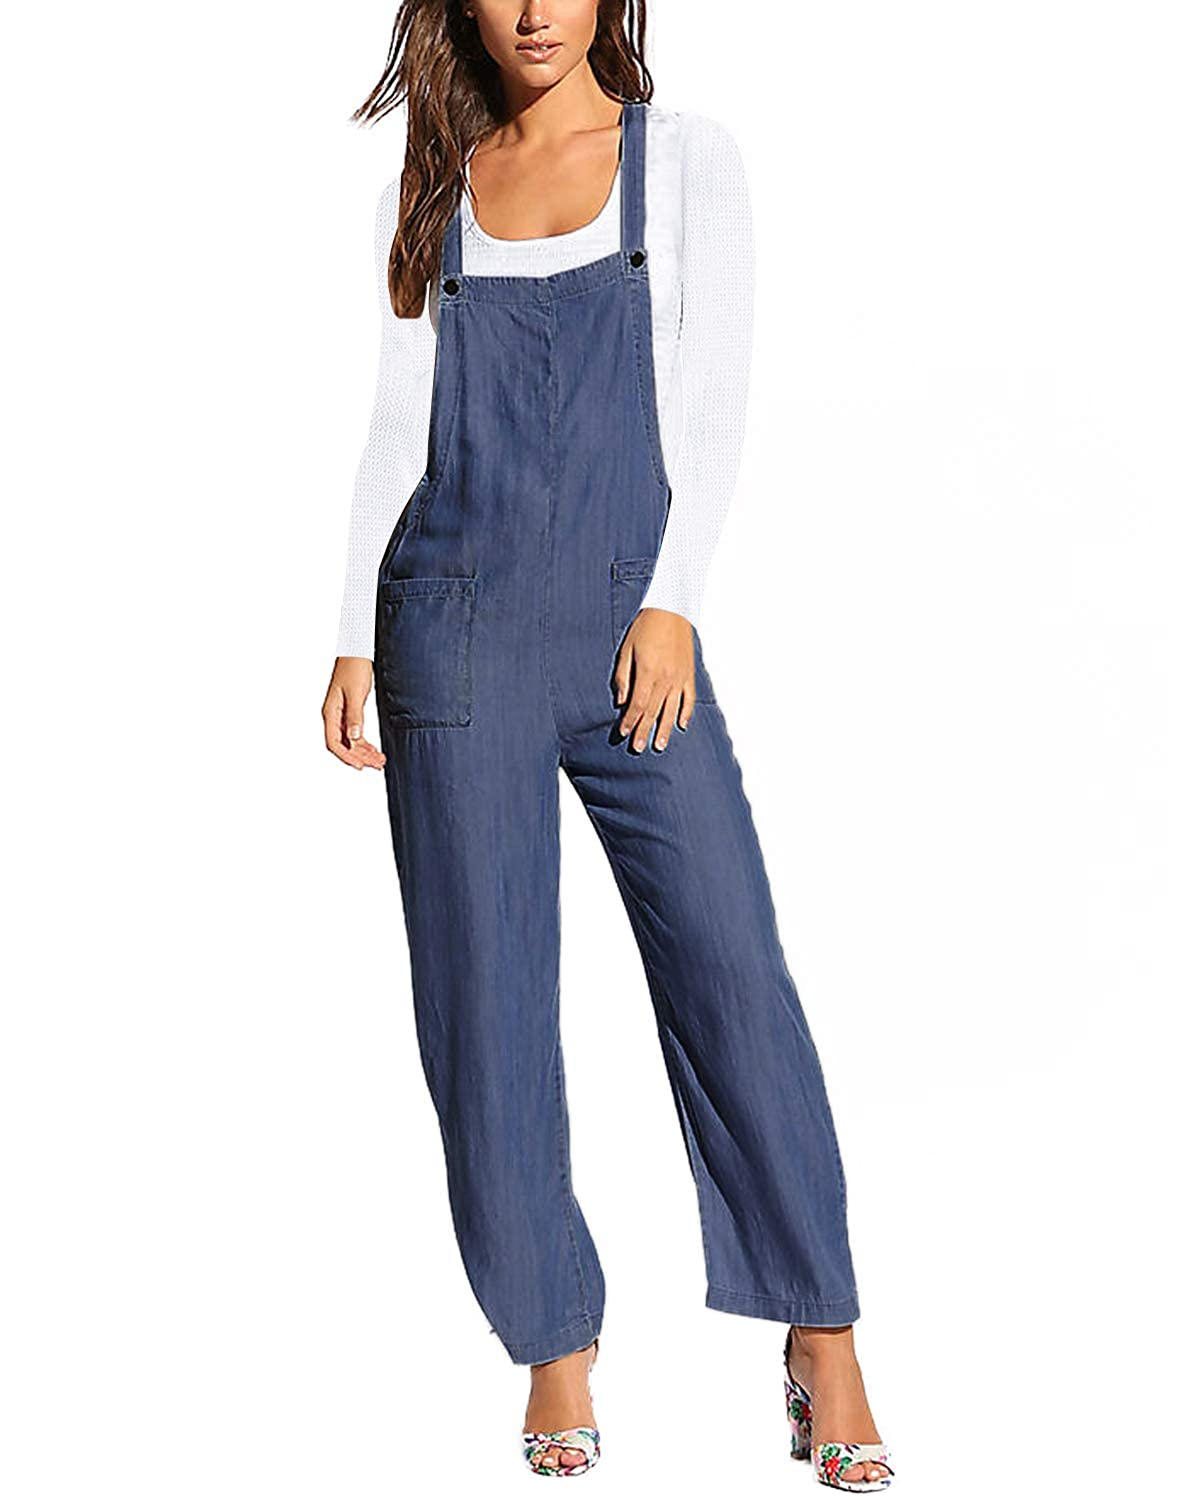 Vintage Overalls 1910s -1950s History & Shop Overalls ACHIOOWA Bib Overalls Denim Jumpsuits Front Pocket Rompers Strappy Pants for Women Casual $25.99 AT vintagedancer.com